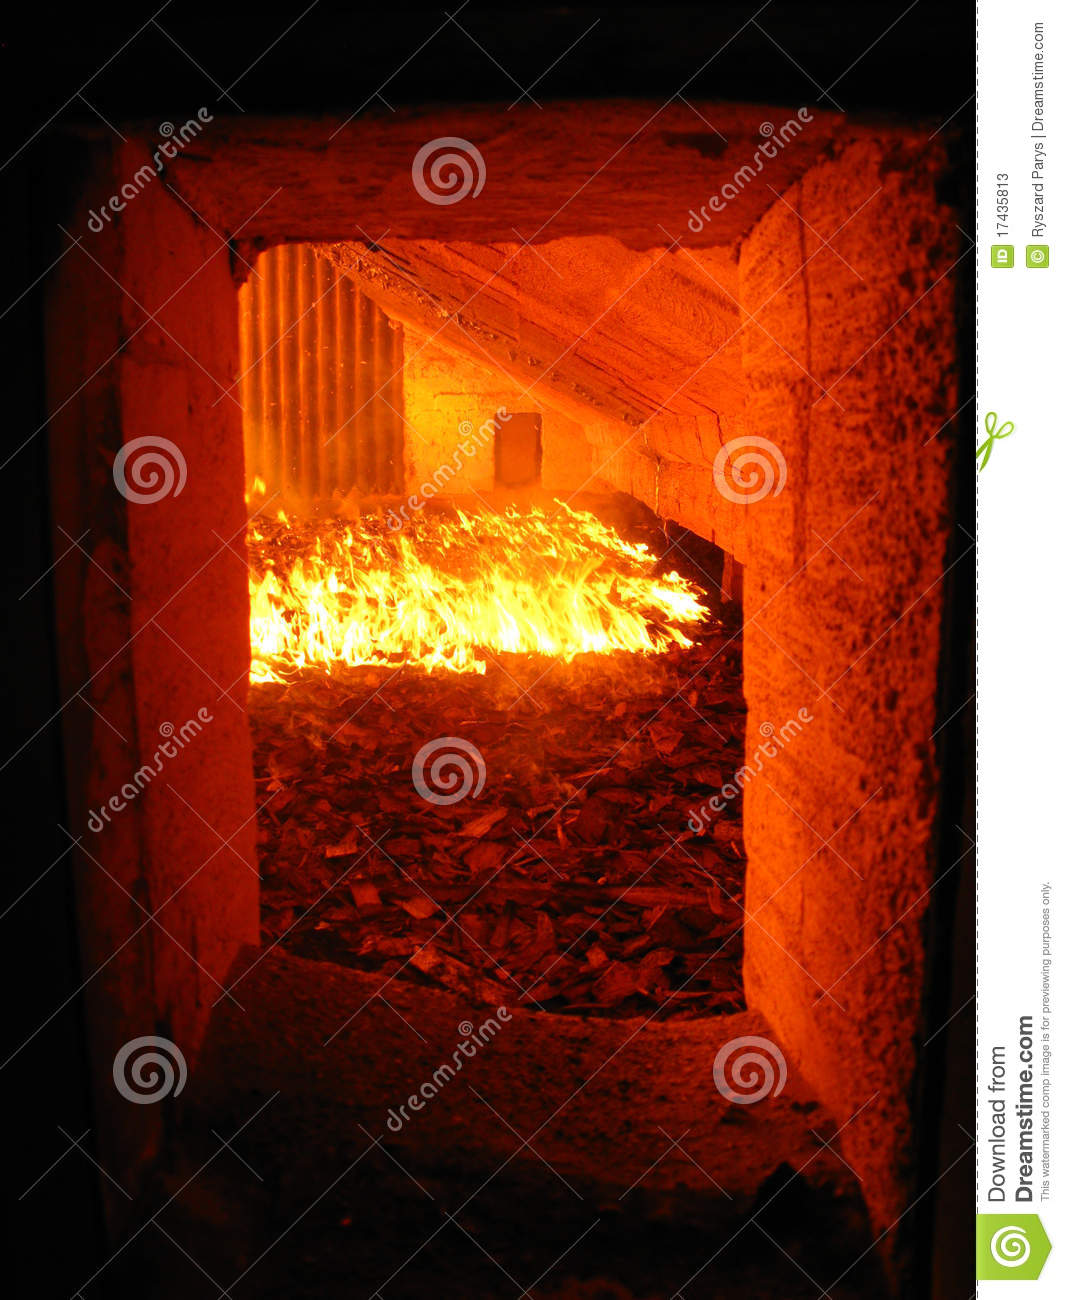 Fire Water Boiler ~ Fire in the boiler grate stock image of energy